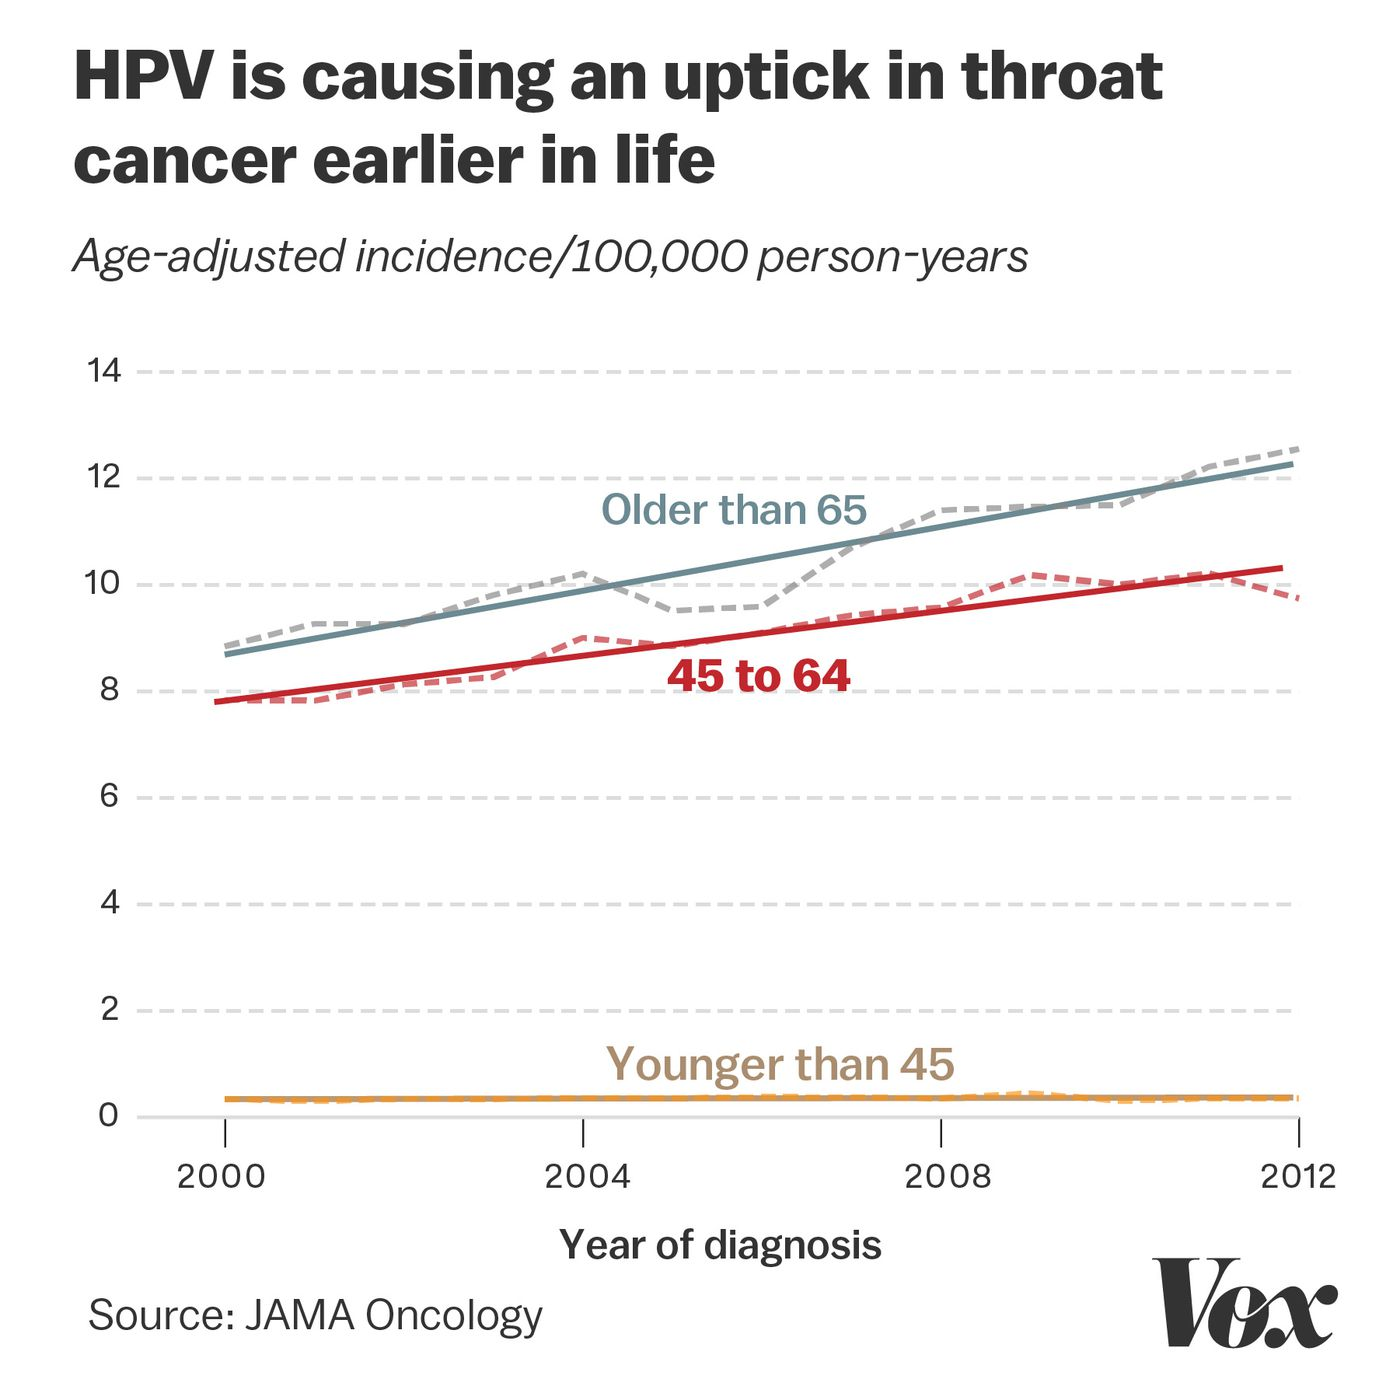 hpv oropharyngeal cancer age)